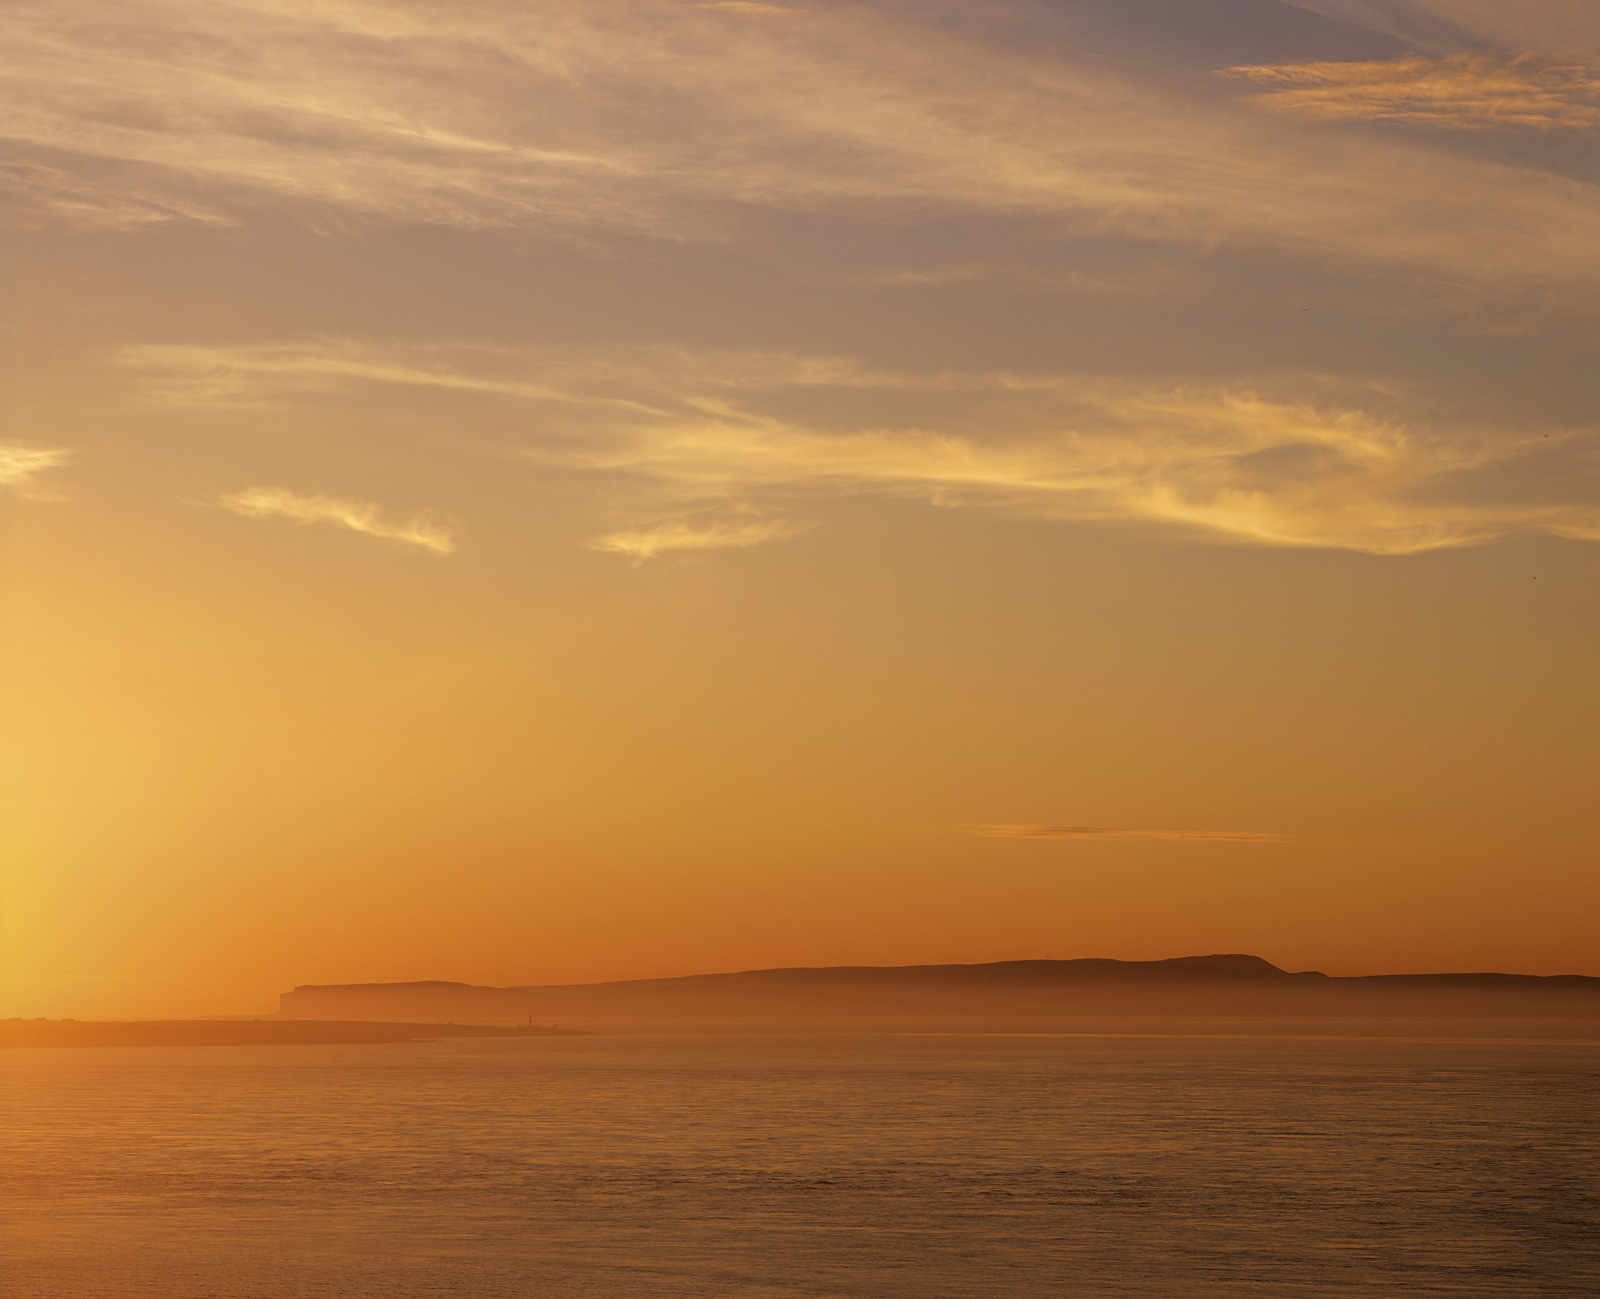 Tangerine Orkney, Duncansby Head, Caithness, Scotland, north, Orkney isles, sea, haar, summer, horizon, glow, blue, clou, photo